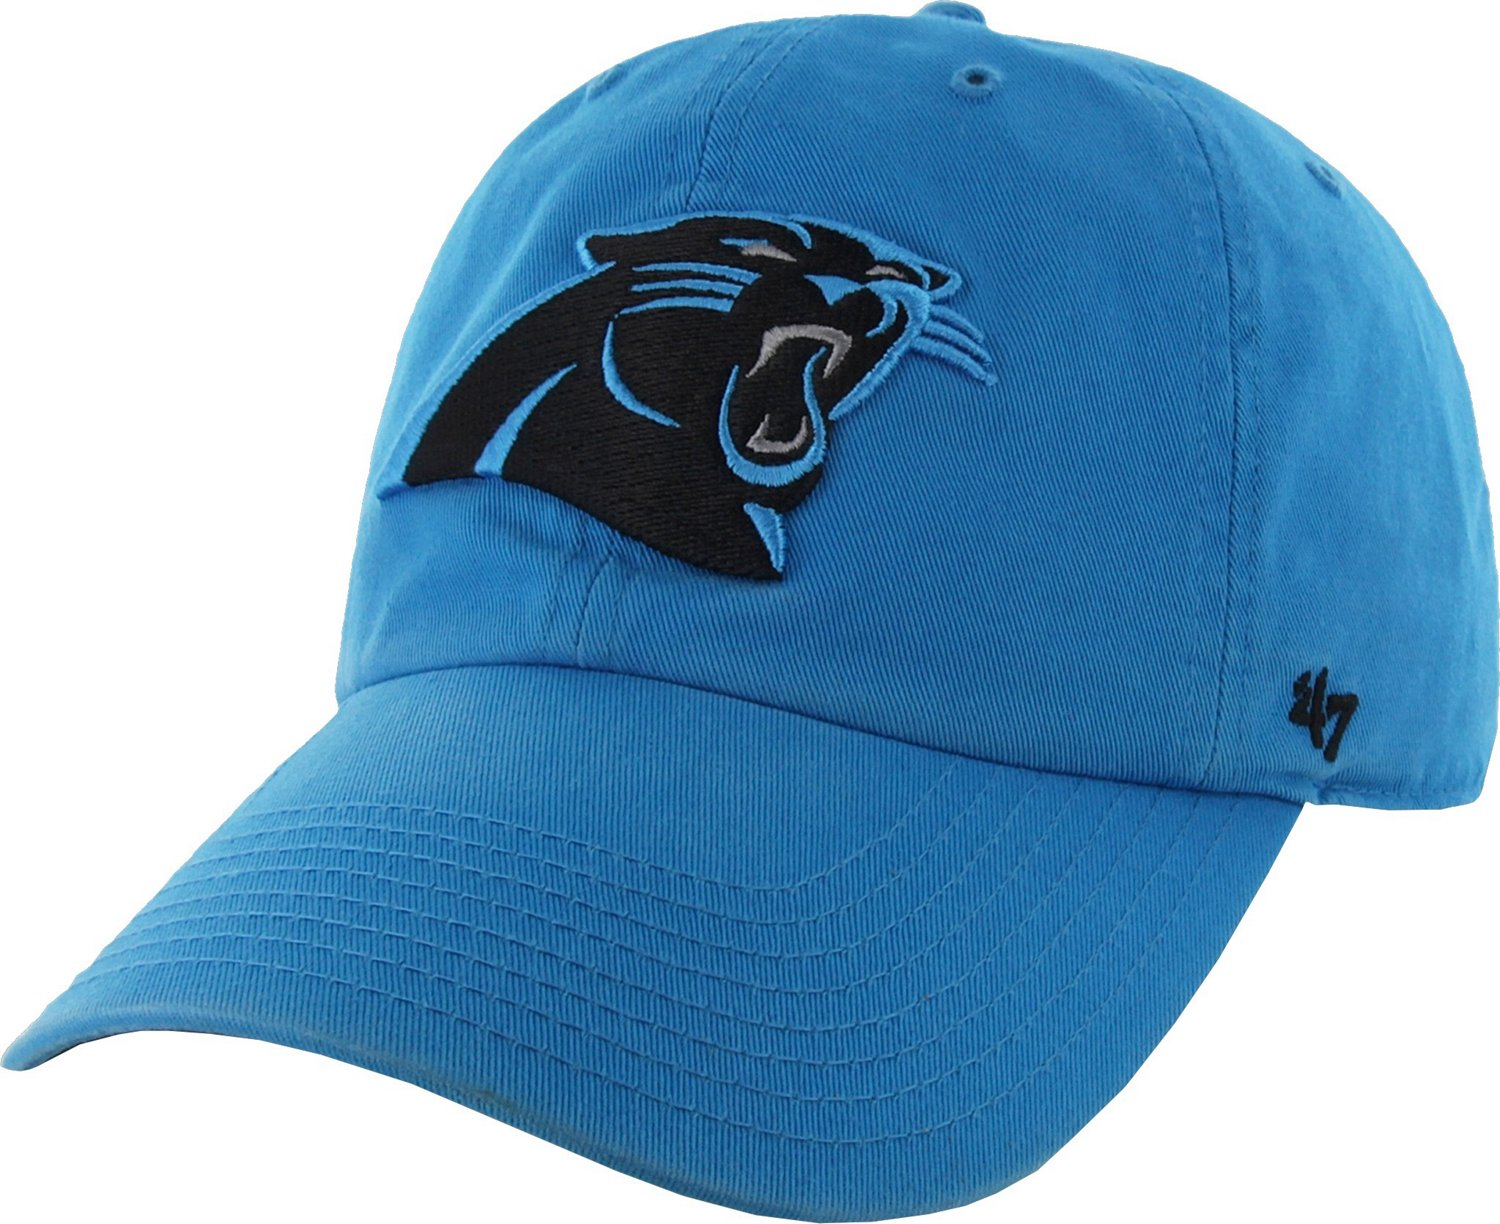 cba35049f  47 Adults  Carolina Panthers Clean Up Cap